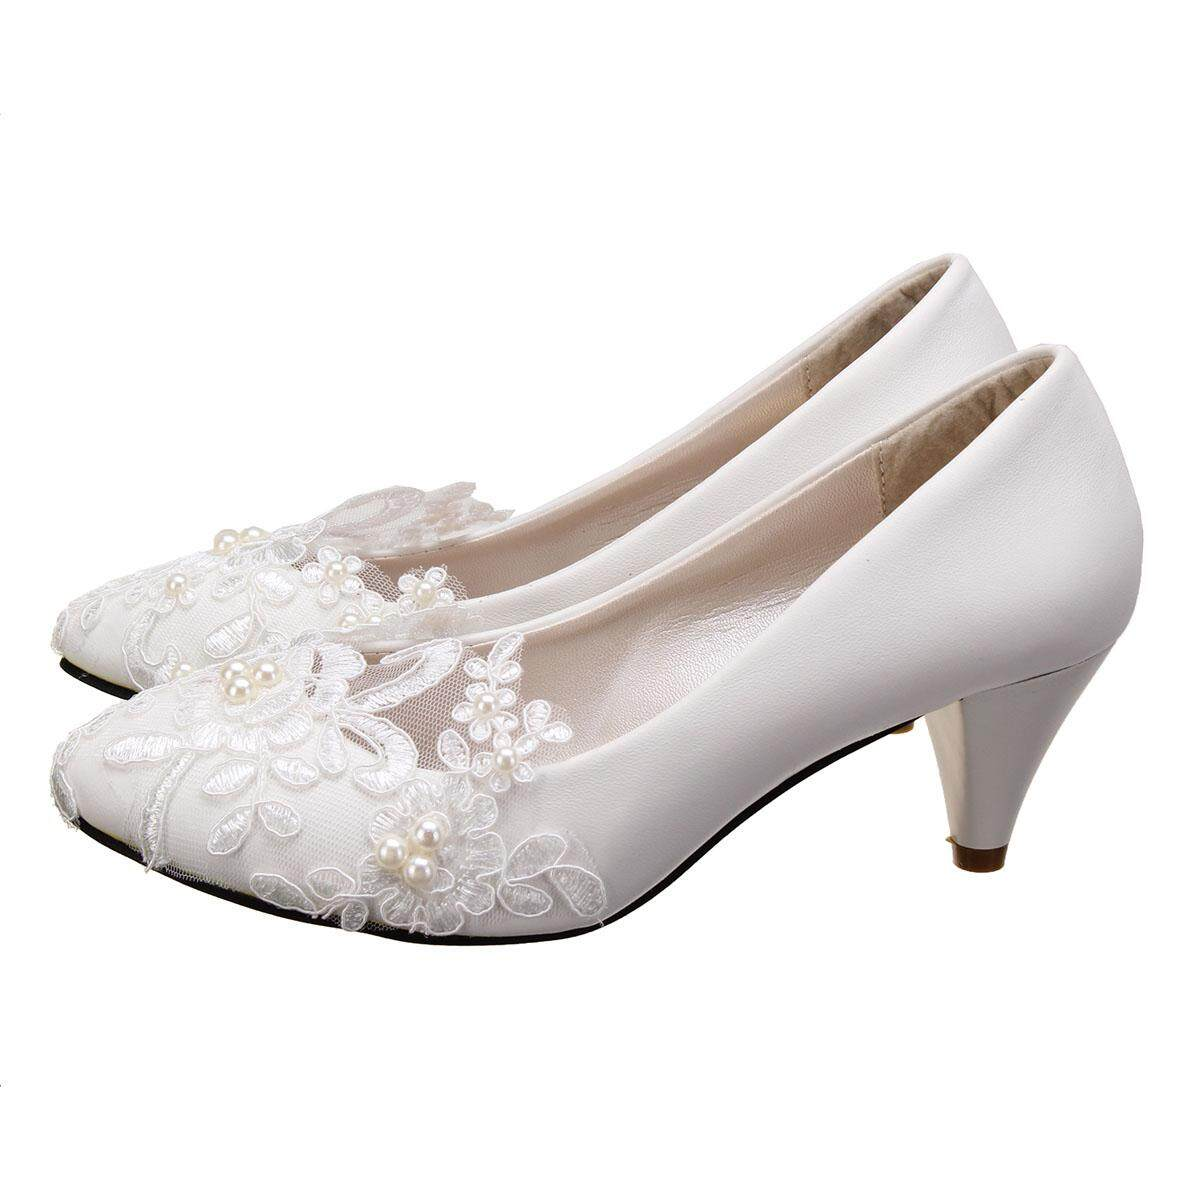 3cf05046abbd Women Pearl Flower Lace Wedding Shoes Prom Bridal Bridesmaid Flat Low Heel  Shoes 5CM